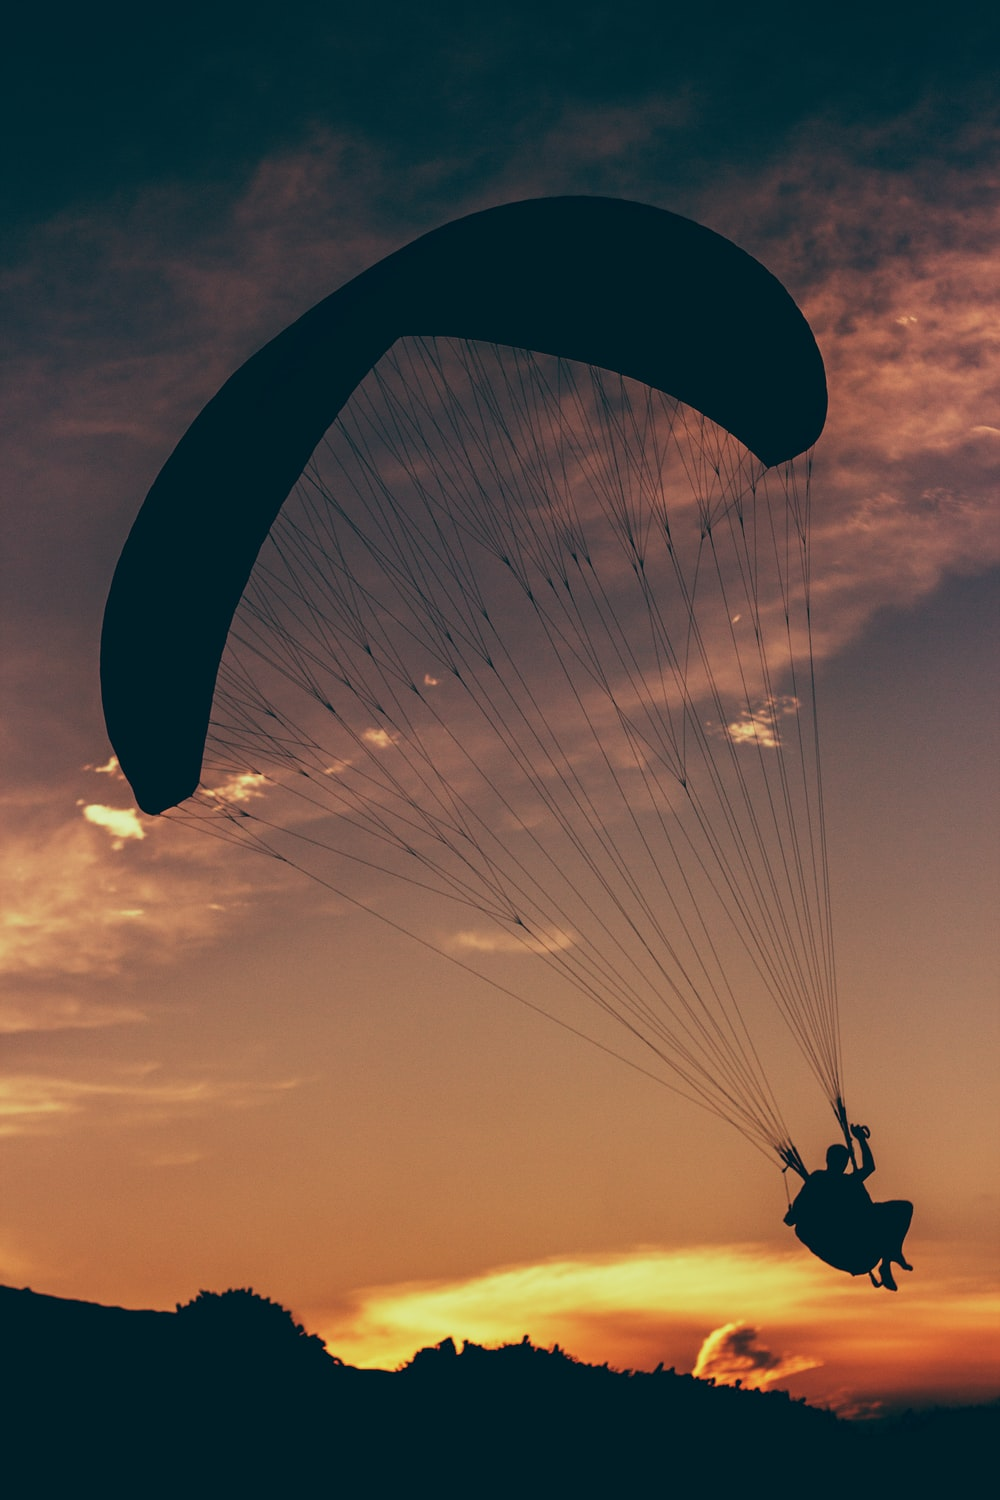 silhouette of man in parachute at golden hour